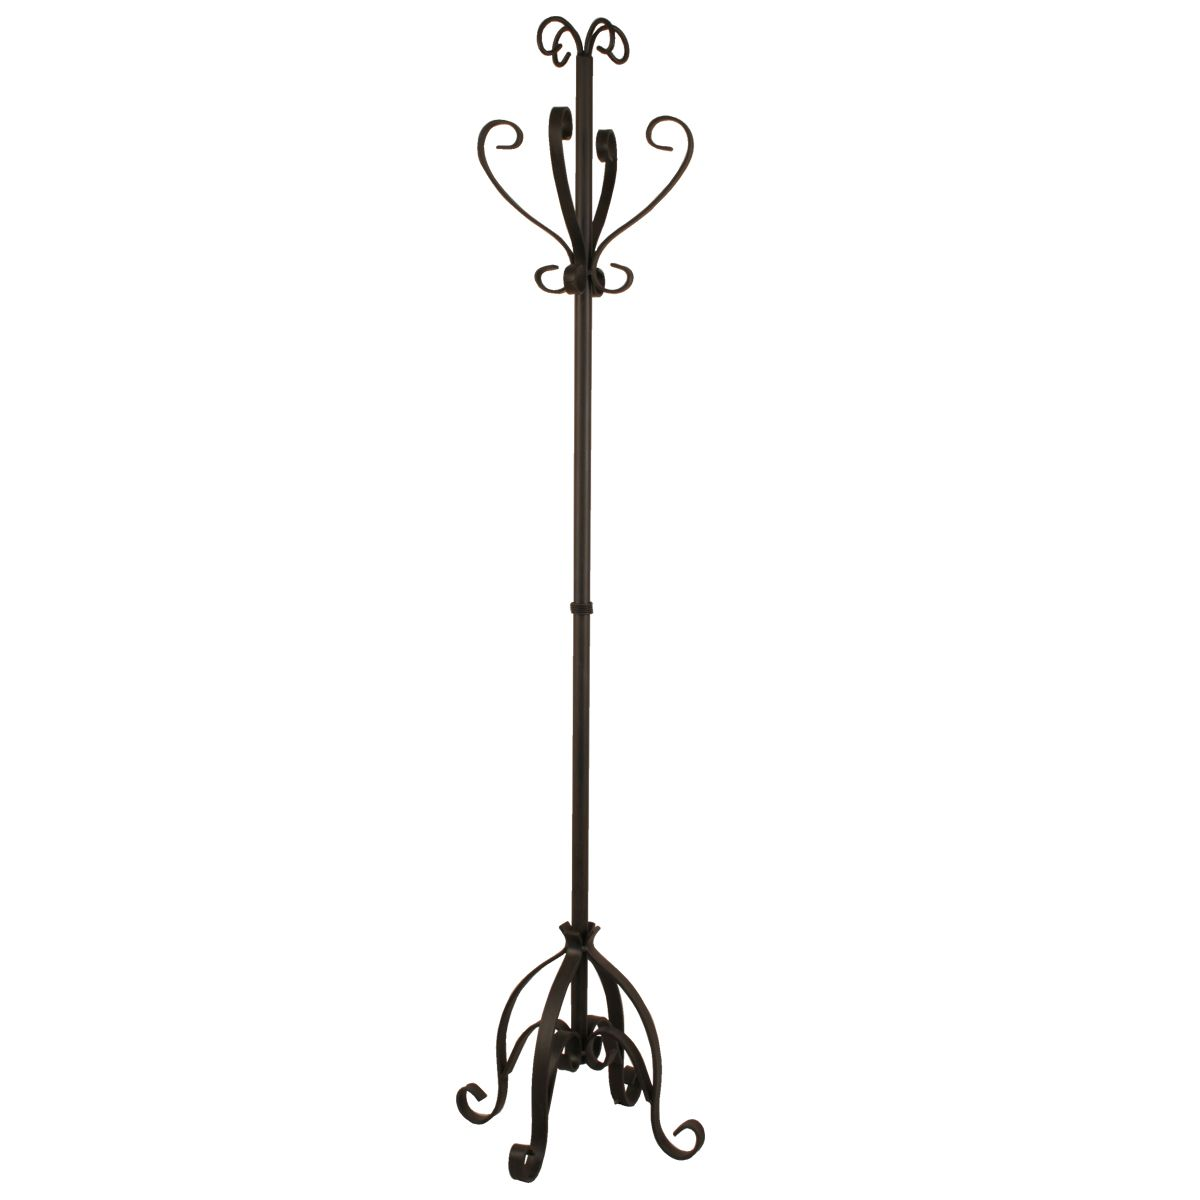 Rustic Iron Coat Rack